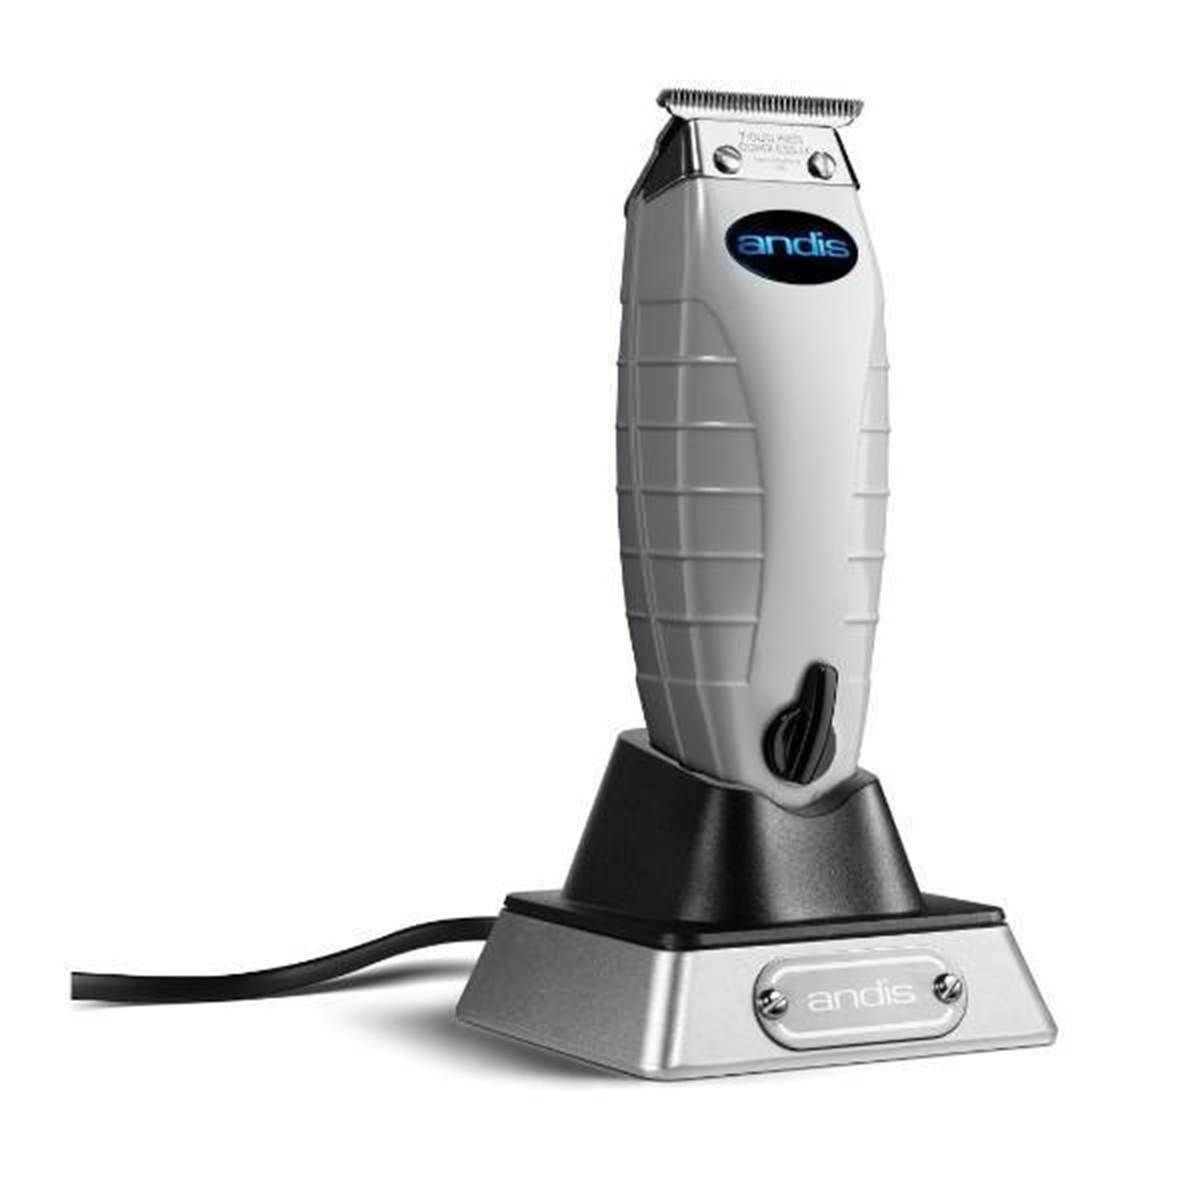 Picture of Andis Cordless T-Outliner Li Trimmer